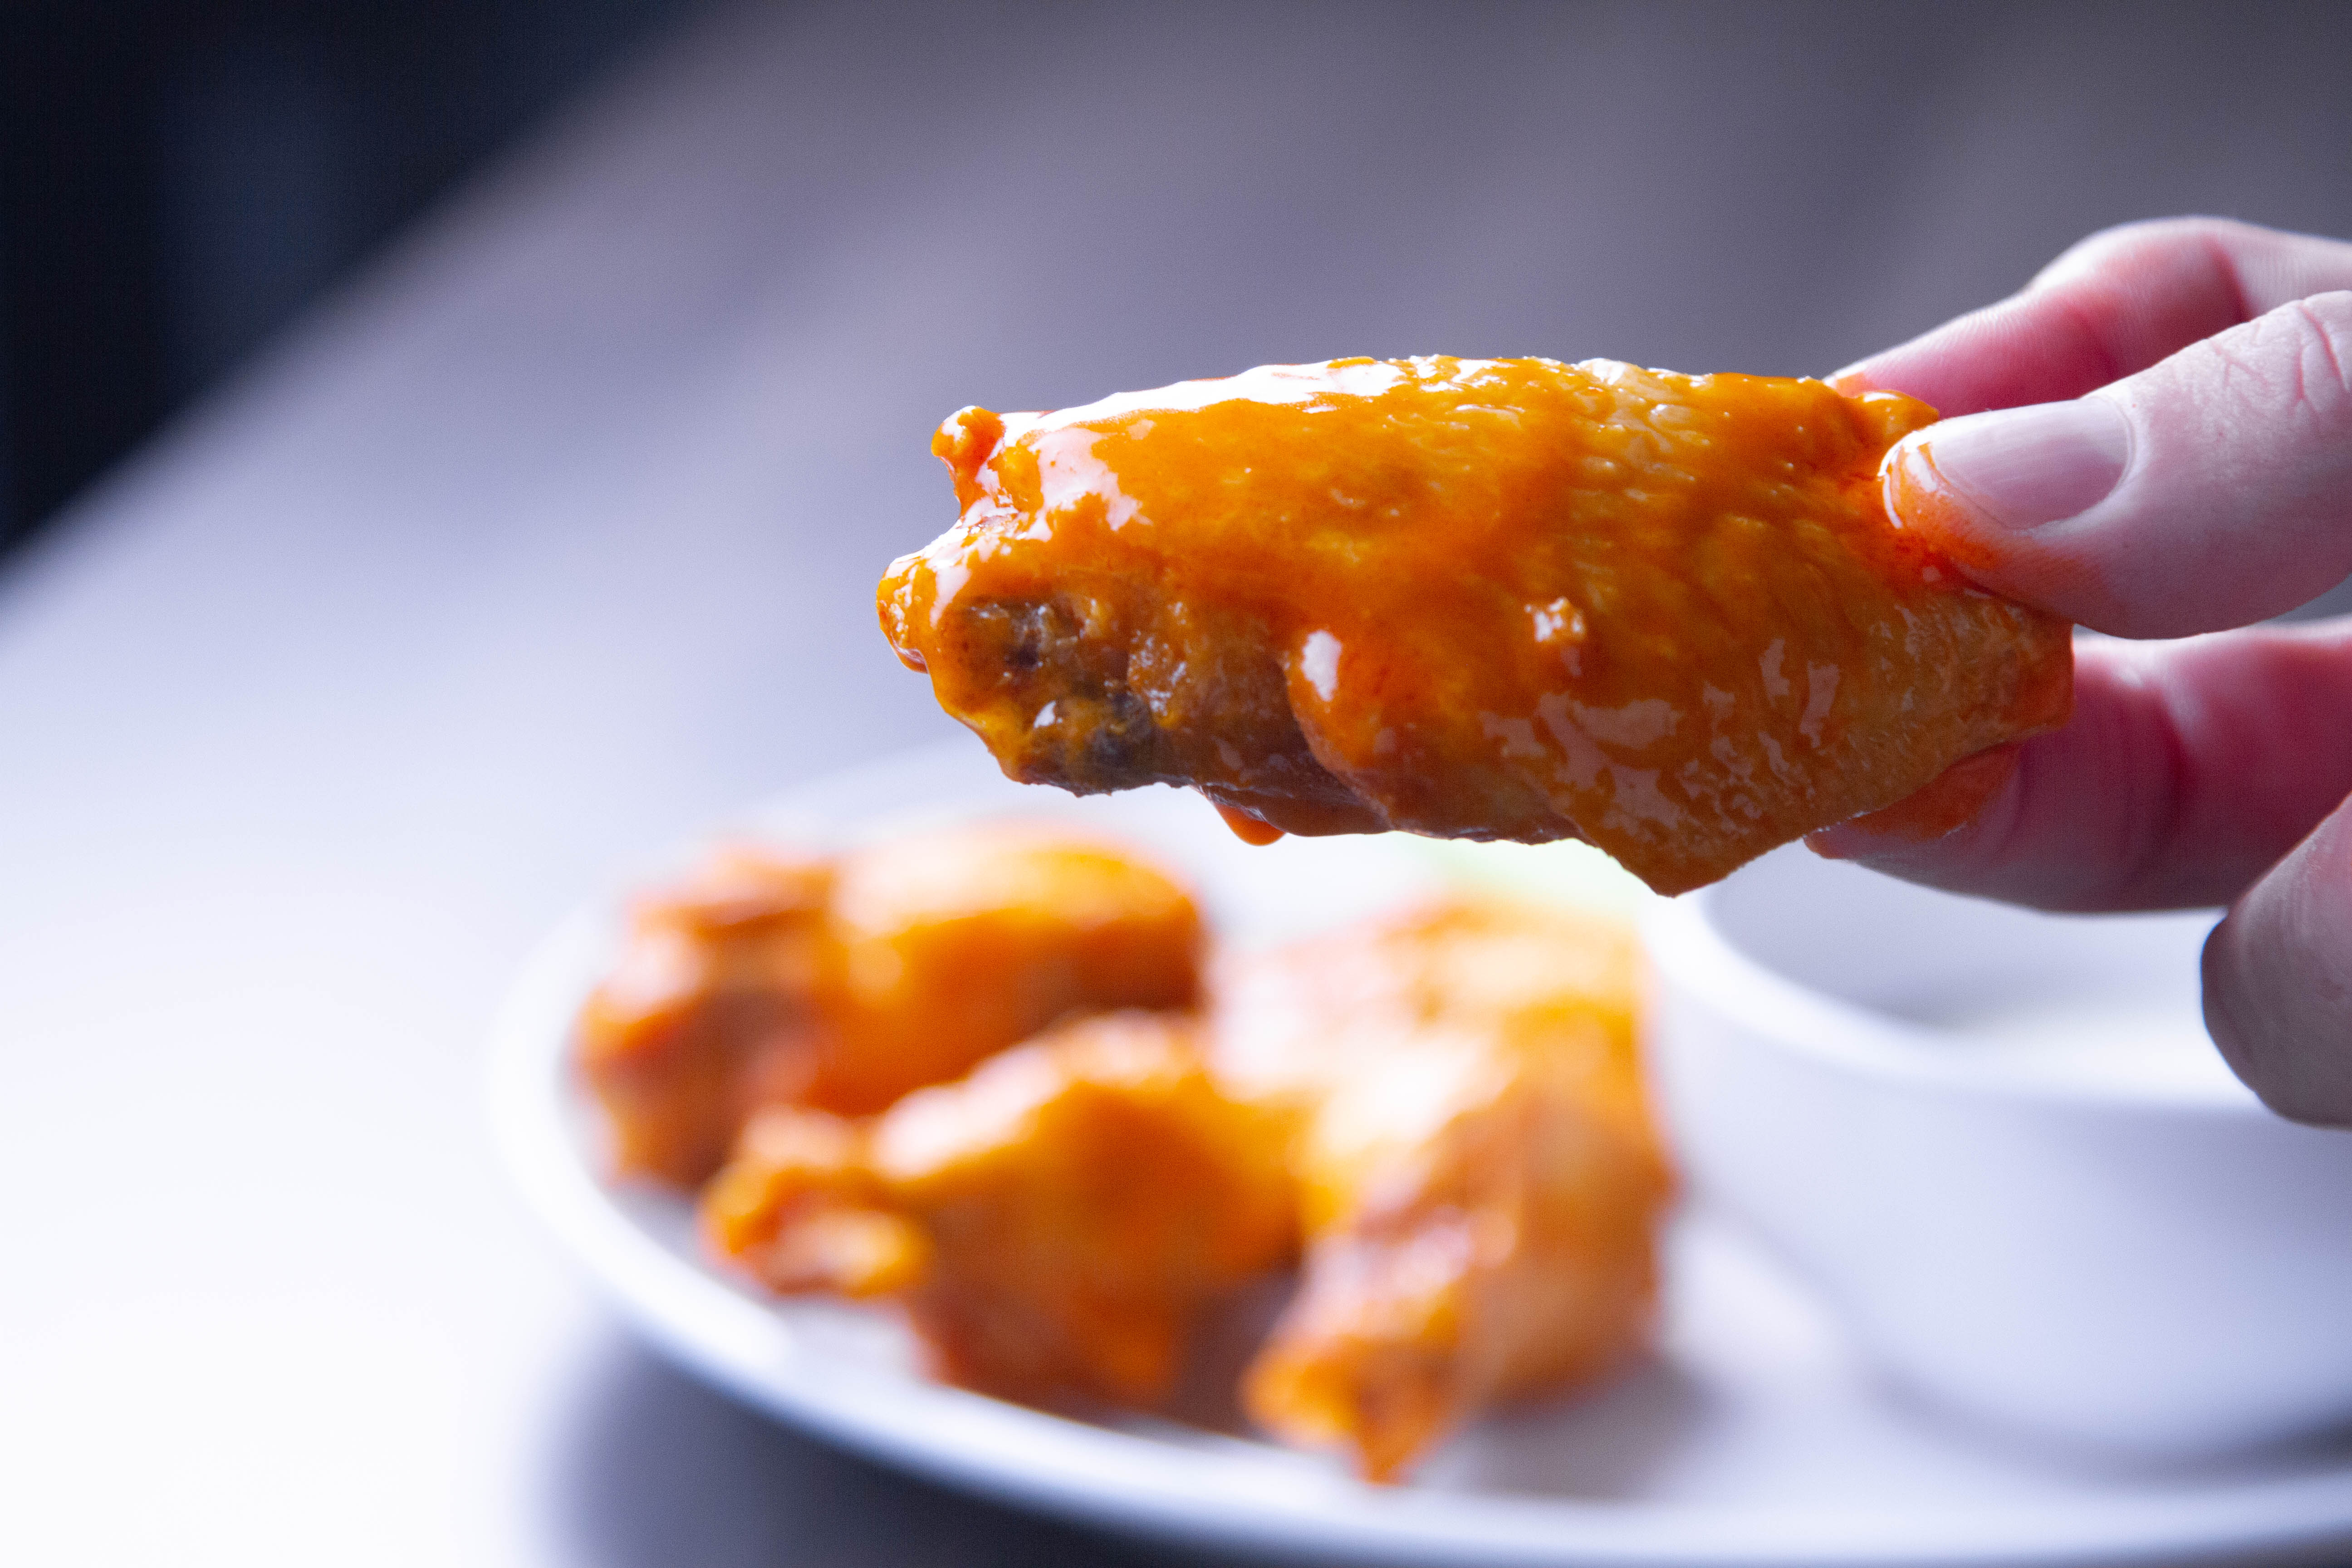 How to make chicken wings